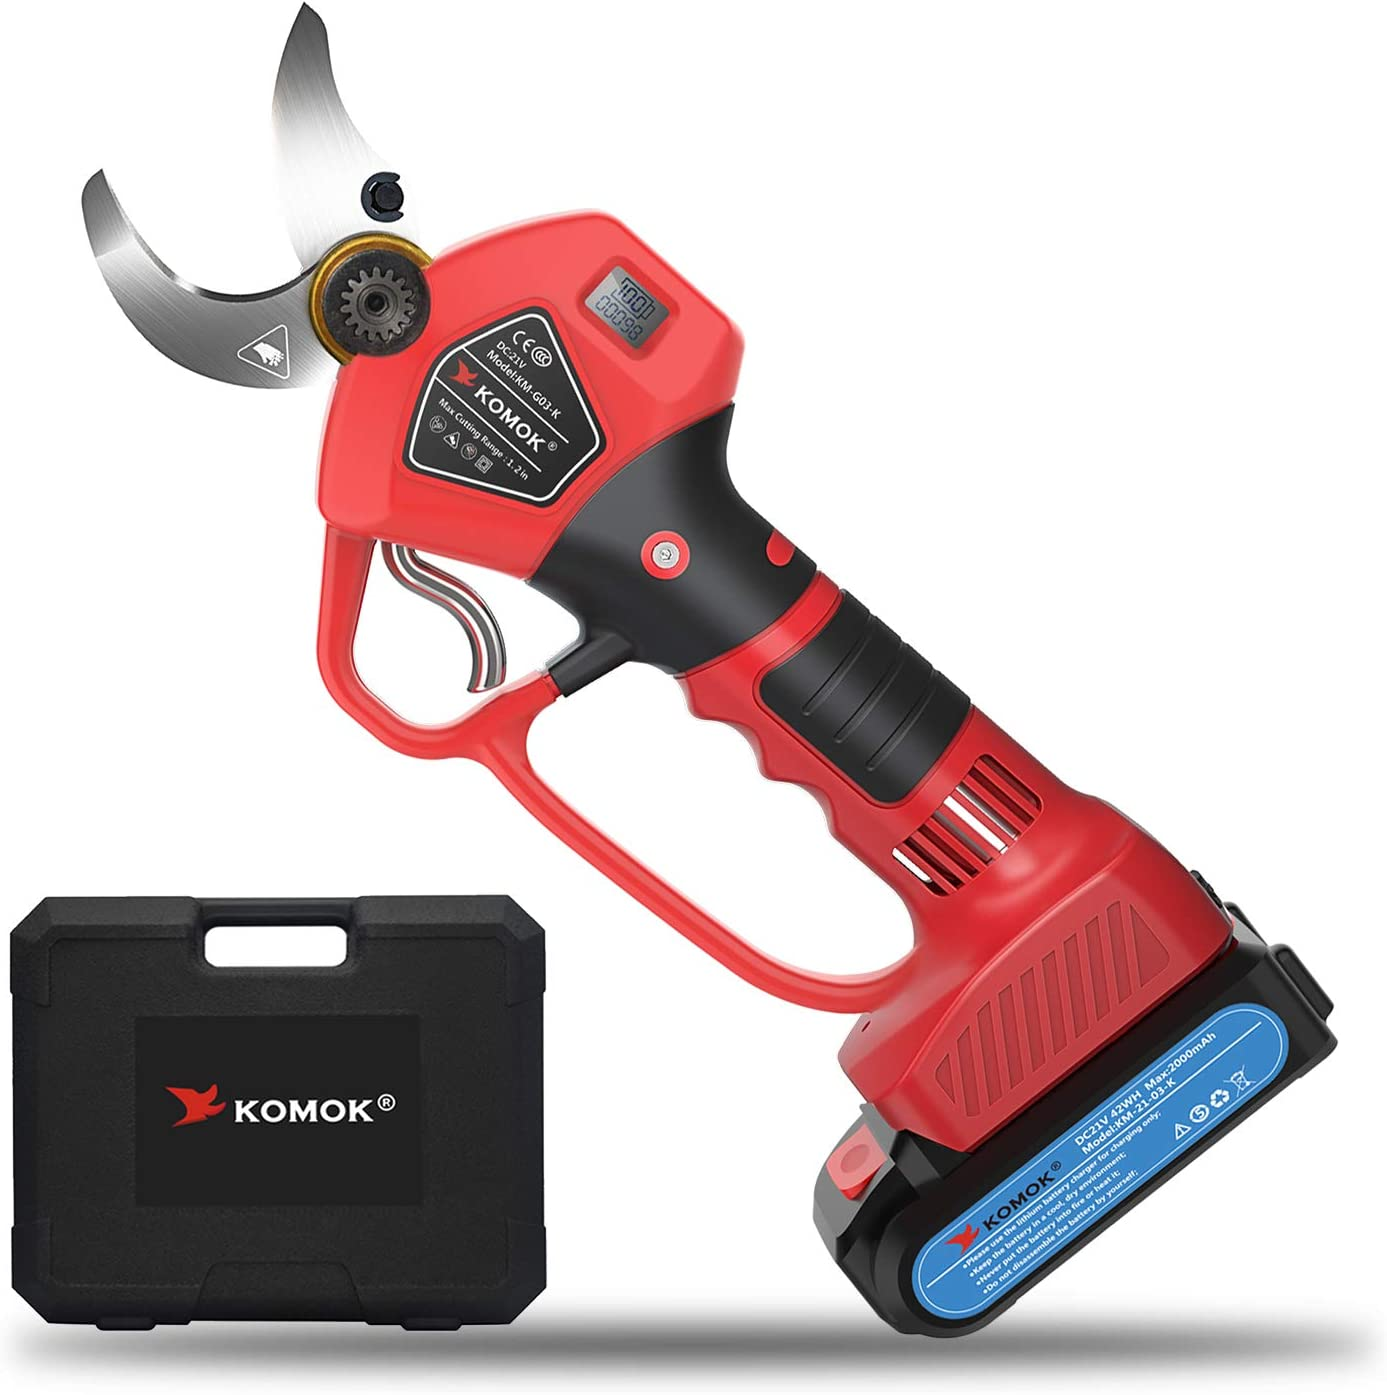 KOMOK Professional Cordless Electric Pruning Shears Secateurs,Smart Garden Orchard Tools,2 Rechargeble 2000mAh Battery with Handguard & Power Display 30MM/1.2Inch Red